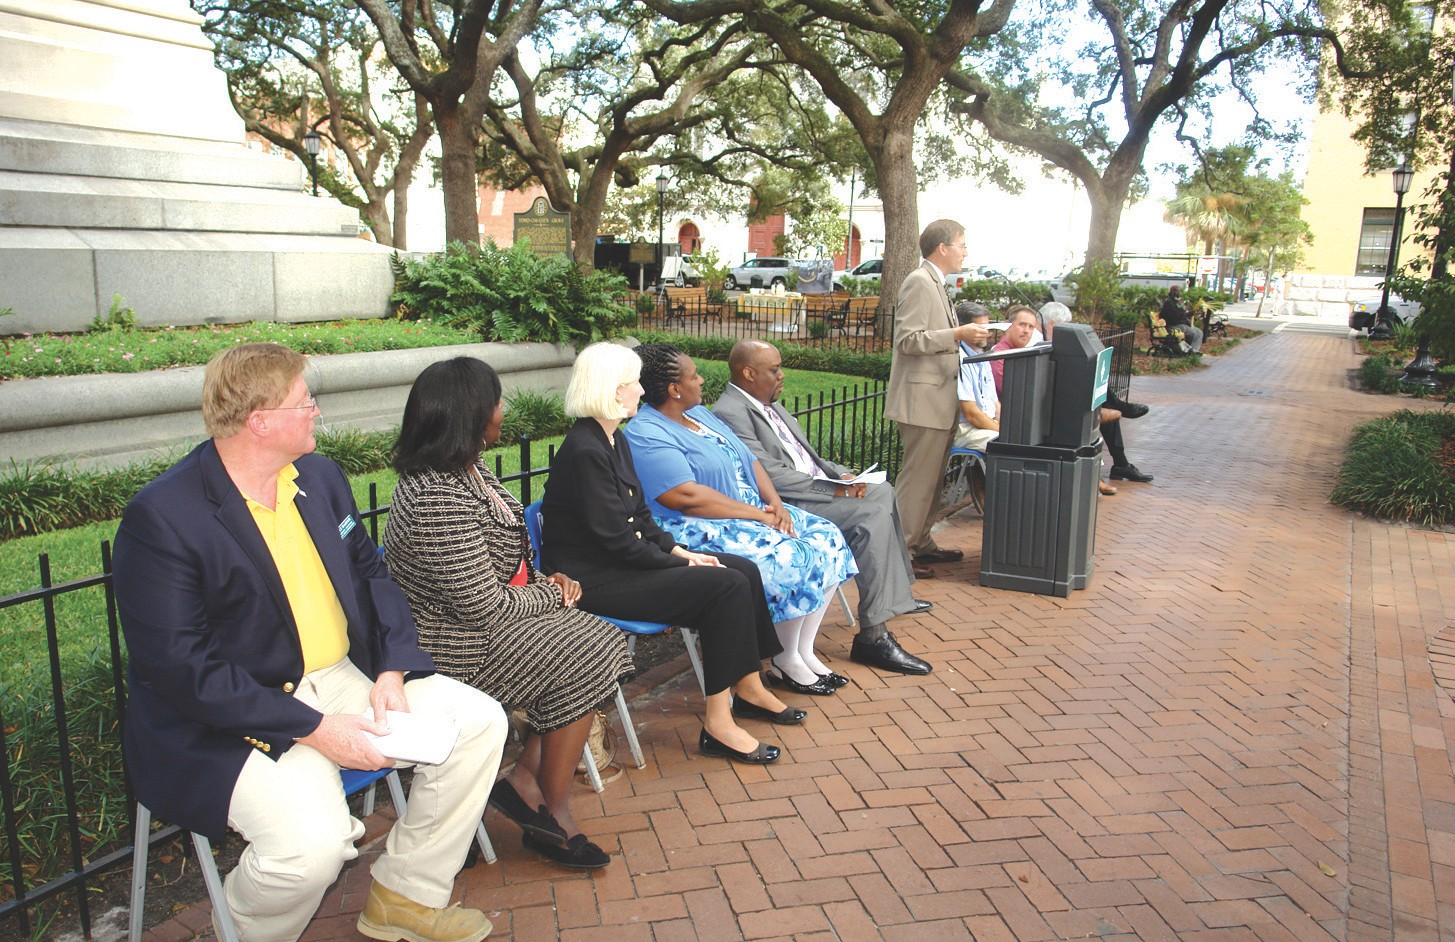 Park and Tree Commission Chairman Walt Harper, Post 1 At-Large Alderman Carolyn H. Bell, District 4 Alderman Mary Ellen Sprague, District 5 Alderman Estella E. Shabazz and Mayor Pro-tem Van R. Johnson look on as Park and Tree Director Jerry Flemming welcomes attendees to Tuesday's makeover celebration in Wright Square.